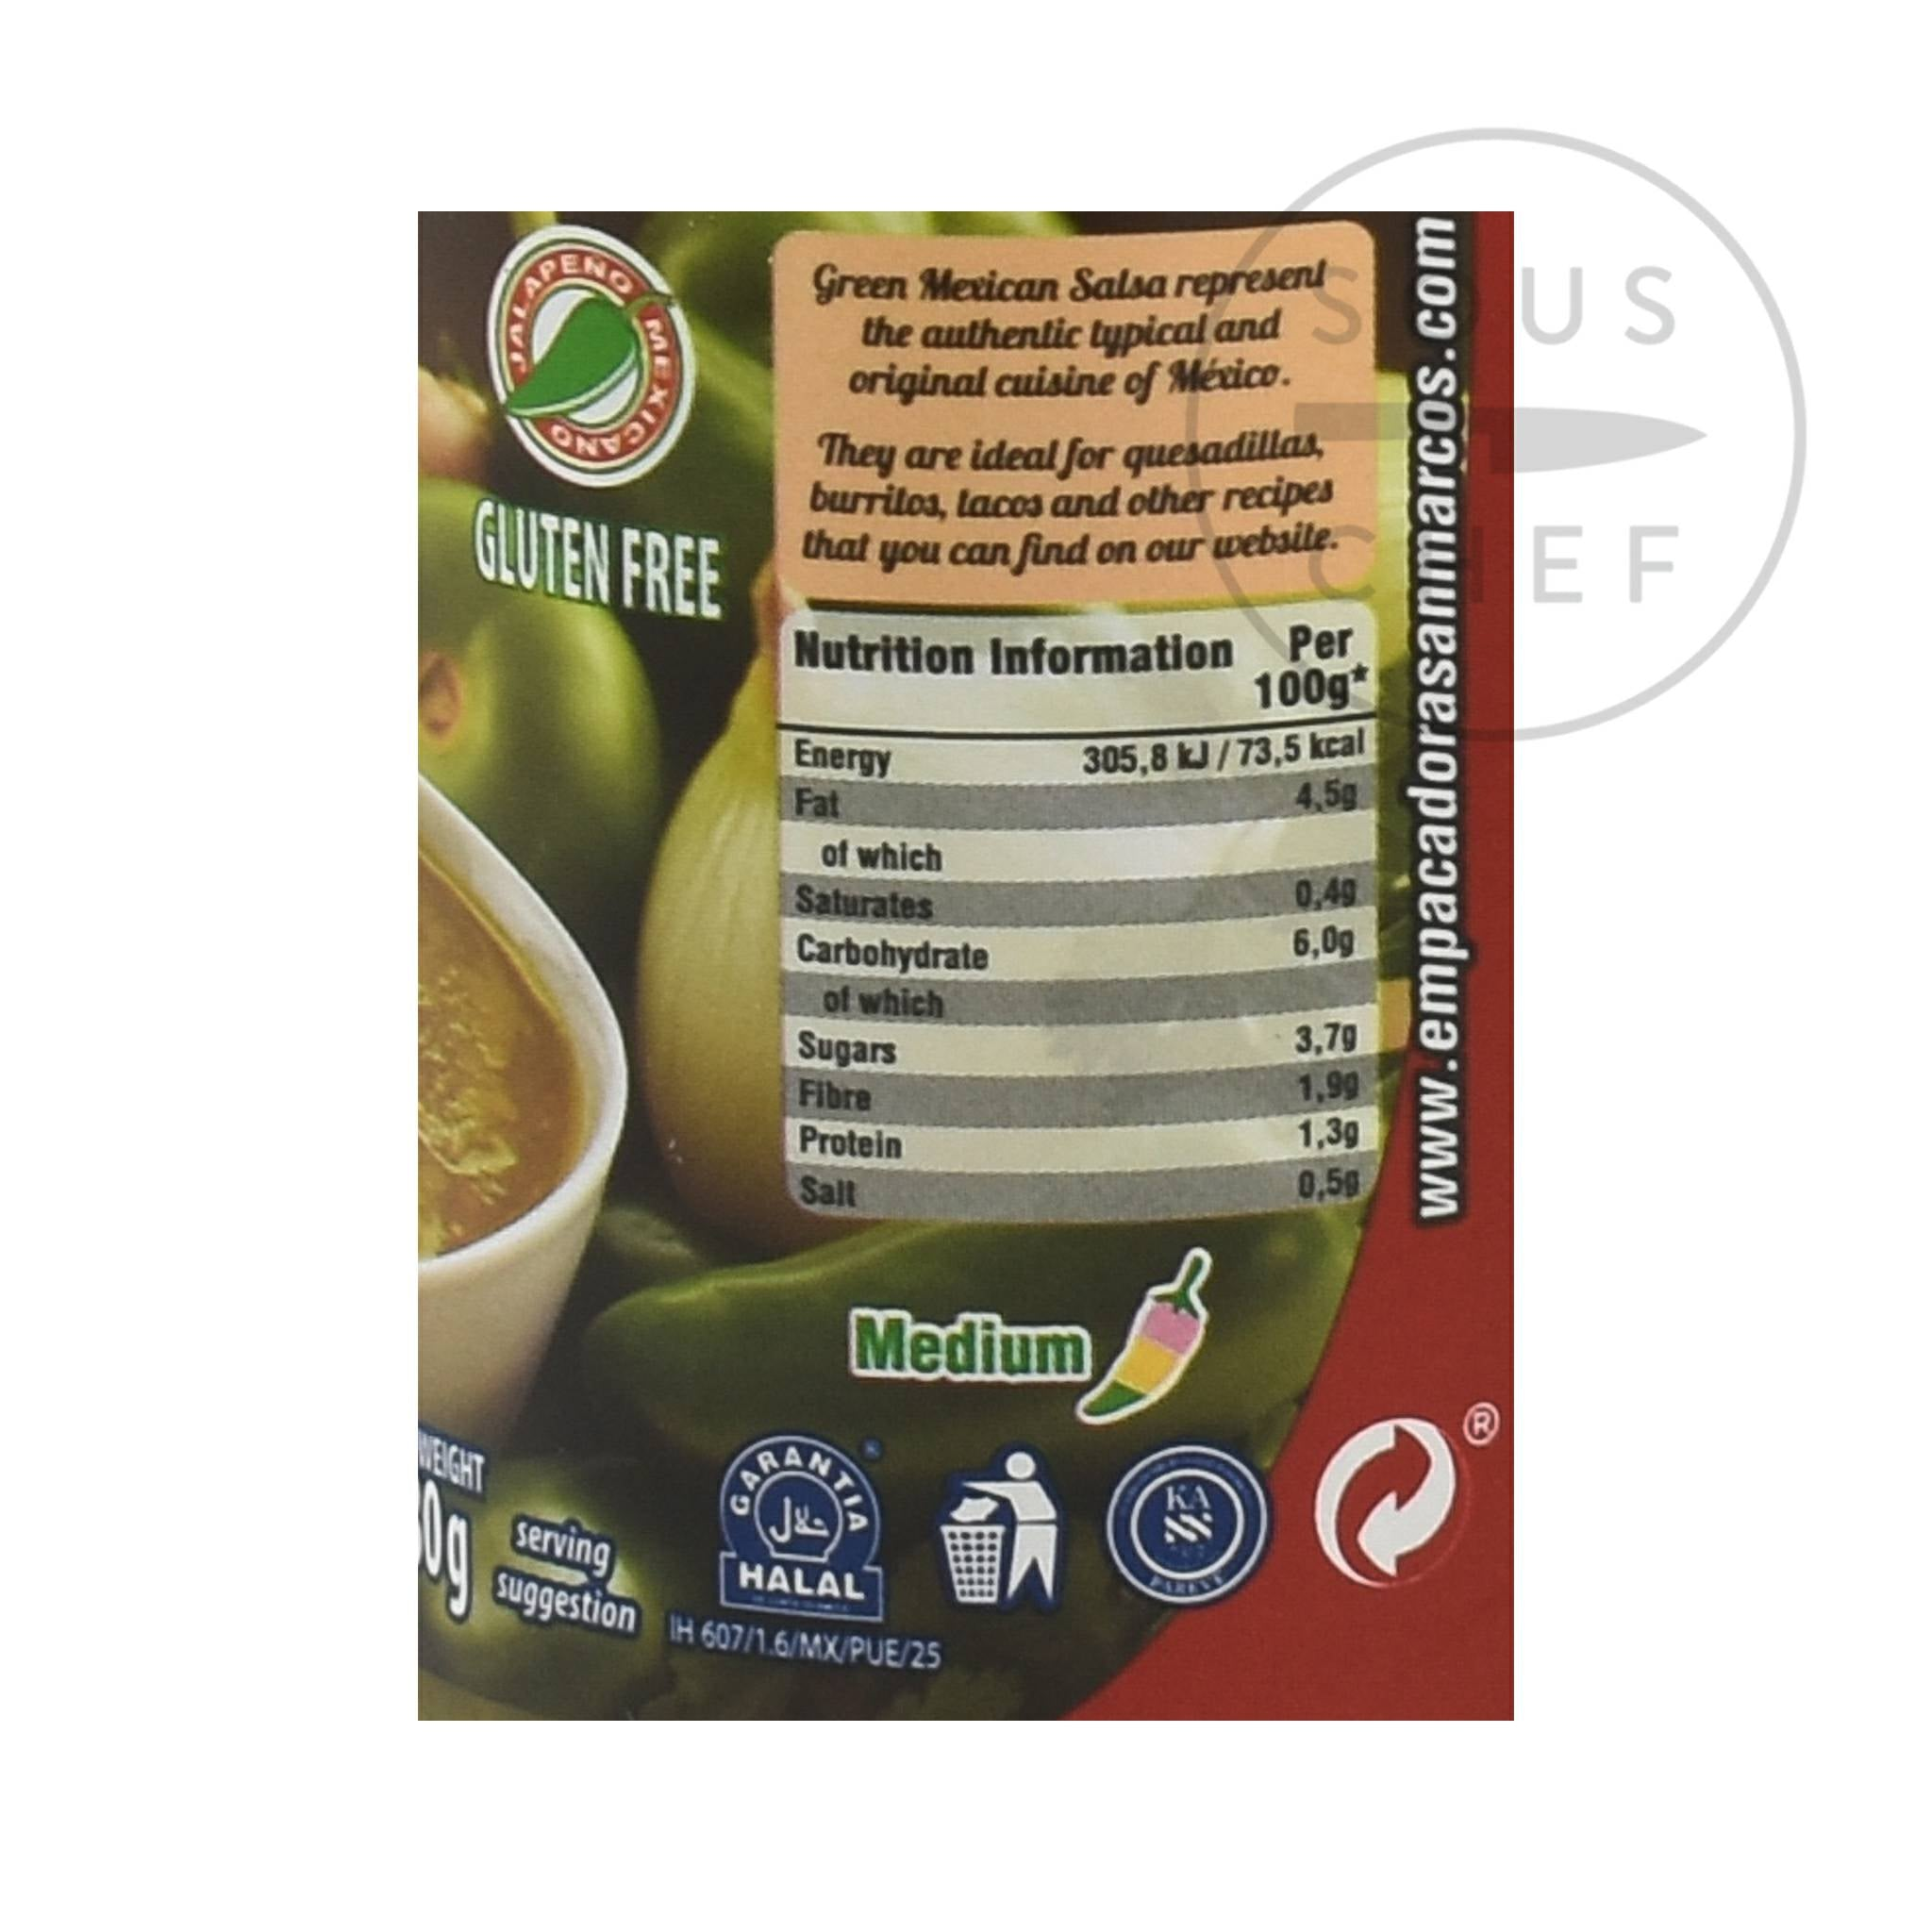 San Marcos Salsa Verde 230g Ingredients Nutritional Information Mexican Food and Cooking